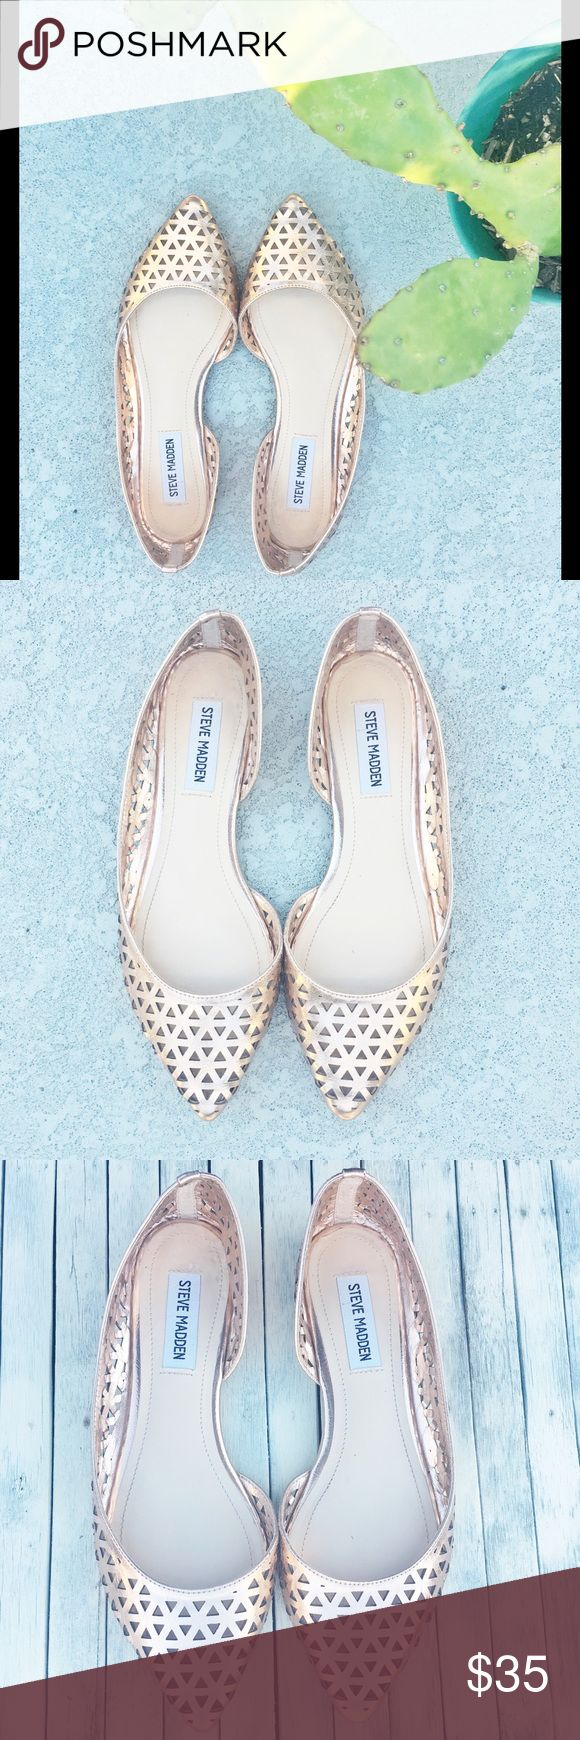 Steve Madden gold flats Like new Steve Madden gold laser cut out flats. Very clean like new in perfect condition. True to size Steve Madden Shoes Flats & Loafers